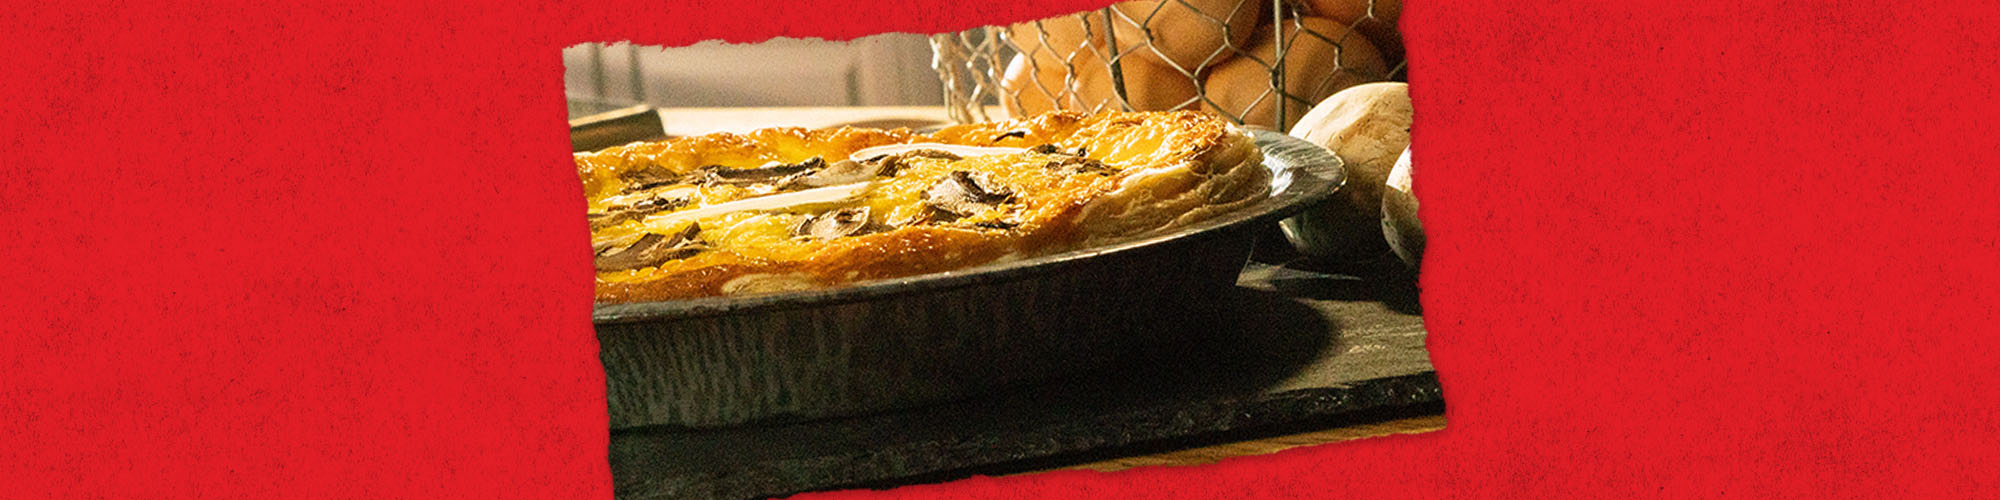 Dona_Maria_Recipe_Mole_and_Mushroom_Quiche